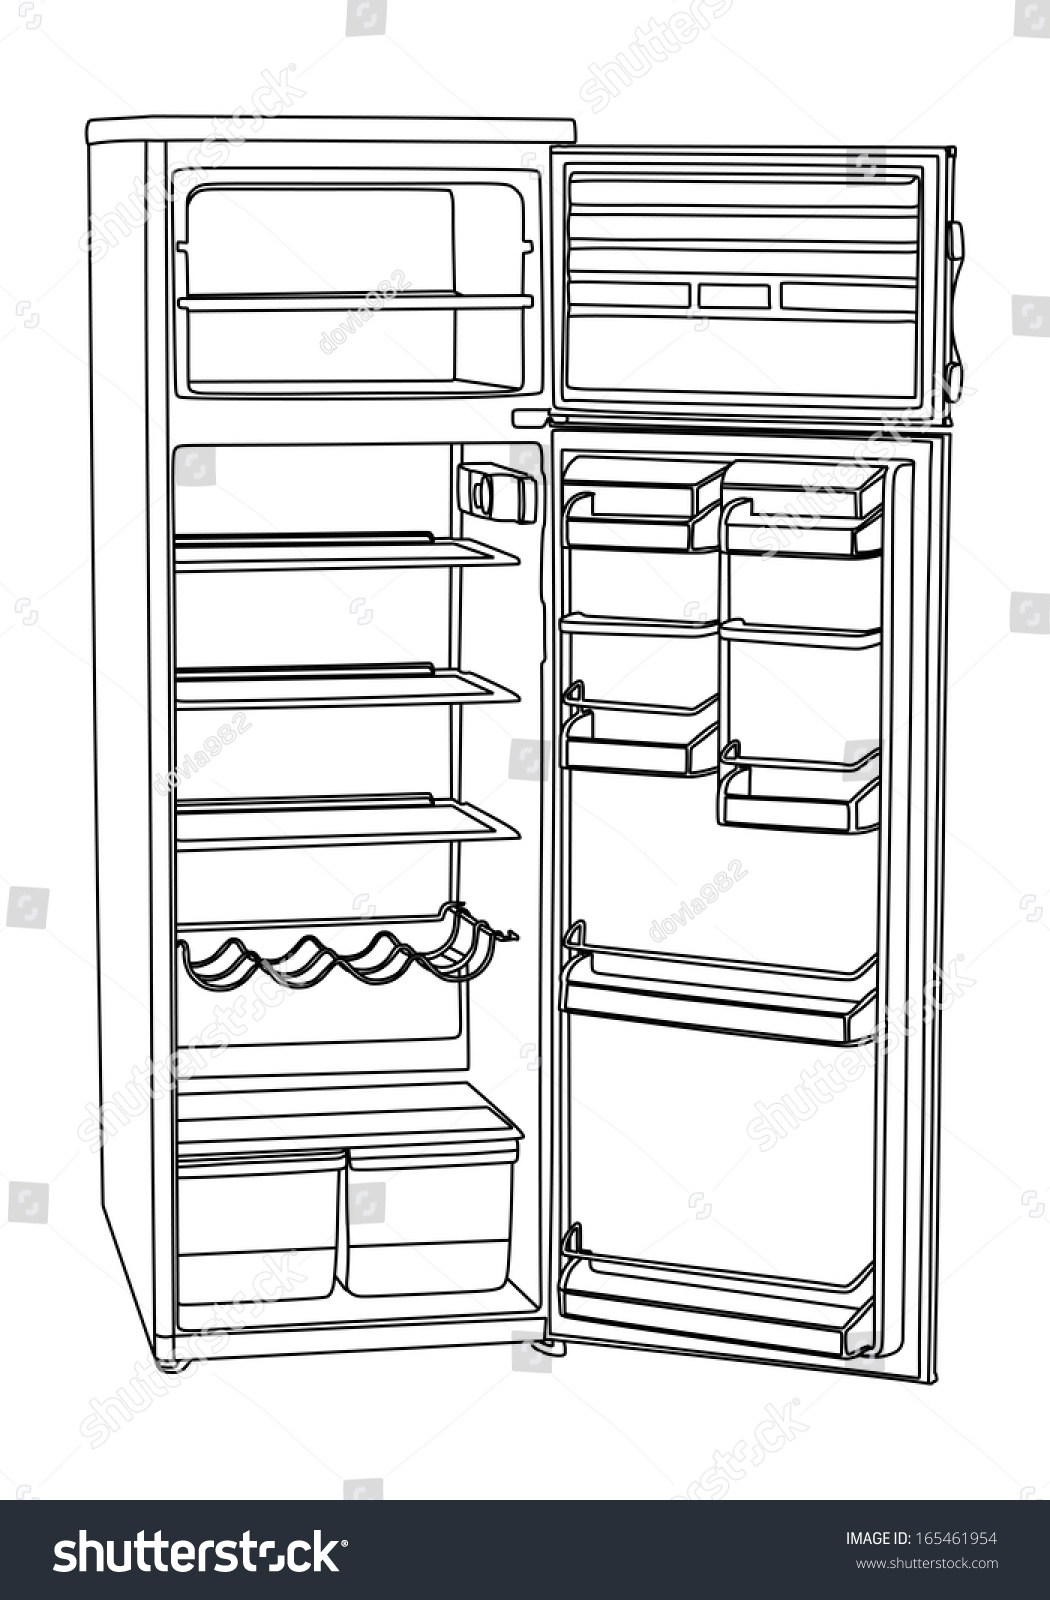 Empty fridge clipart 8 » Clipart Portal.